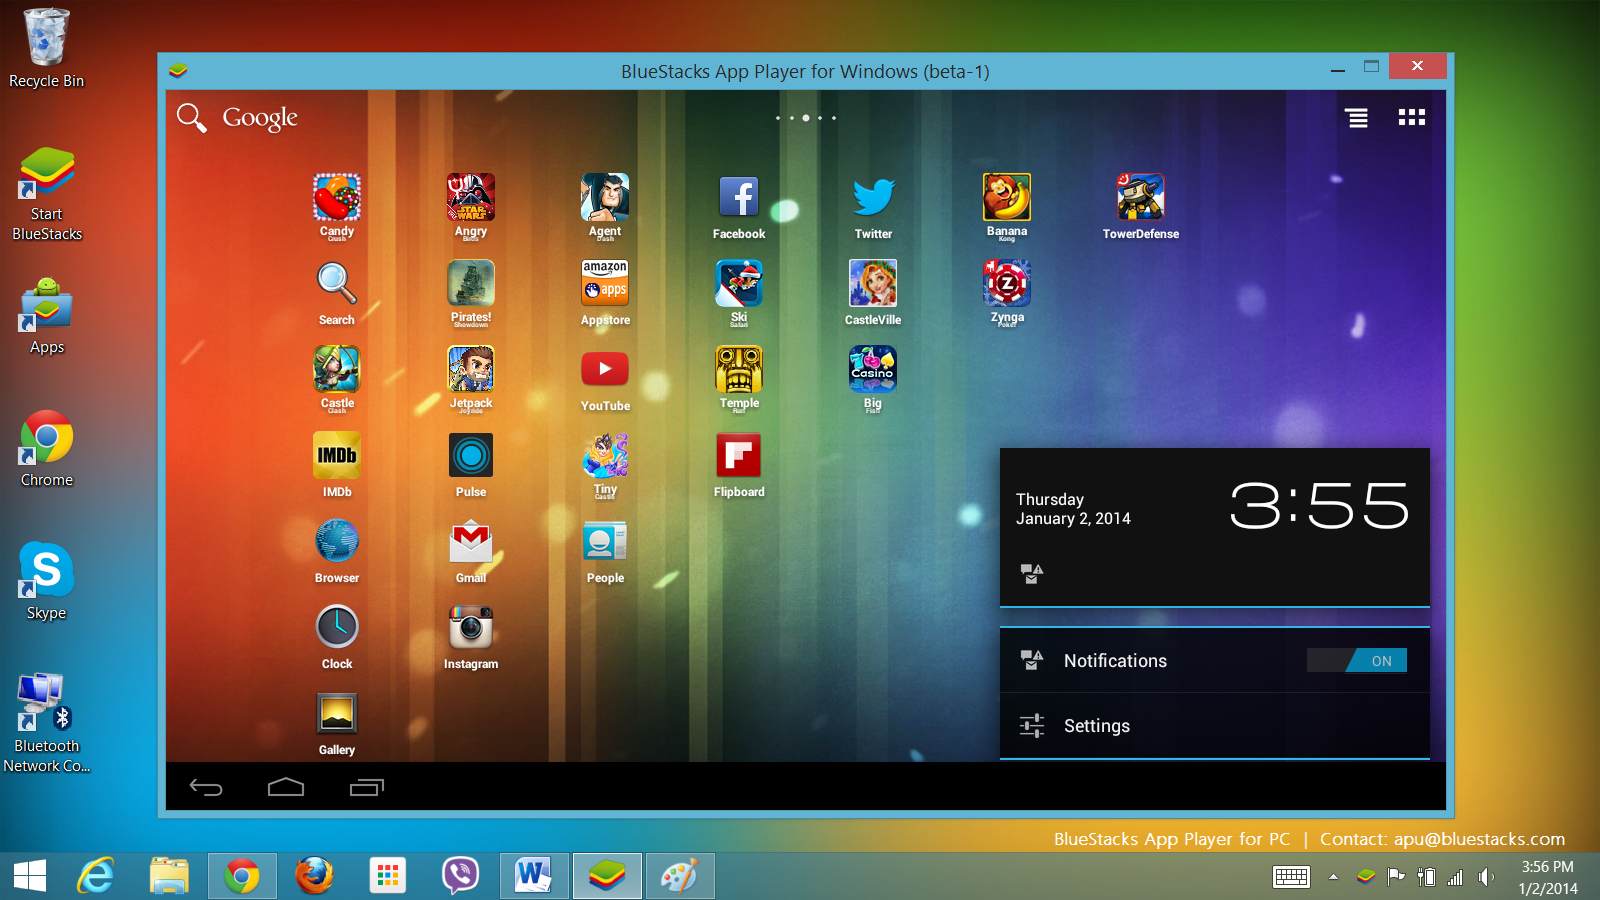 How To Run ANDROID Apps On PC [WINDOWS 7/8]